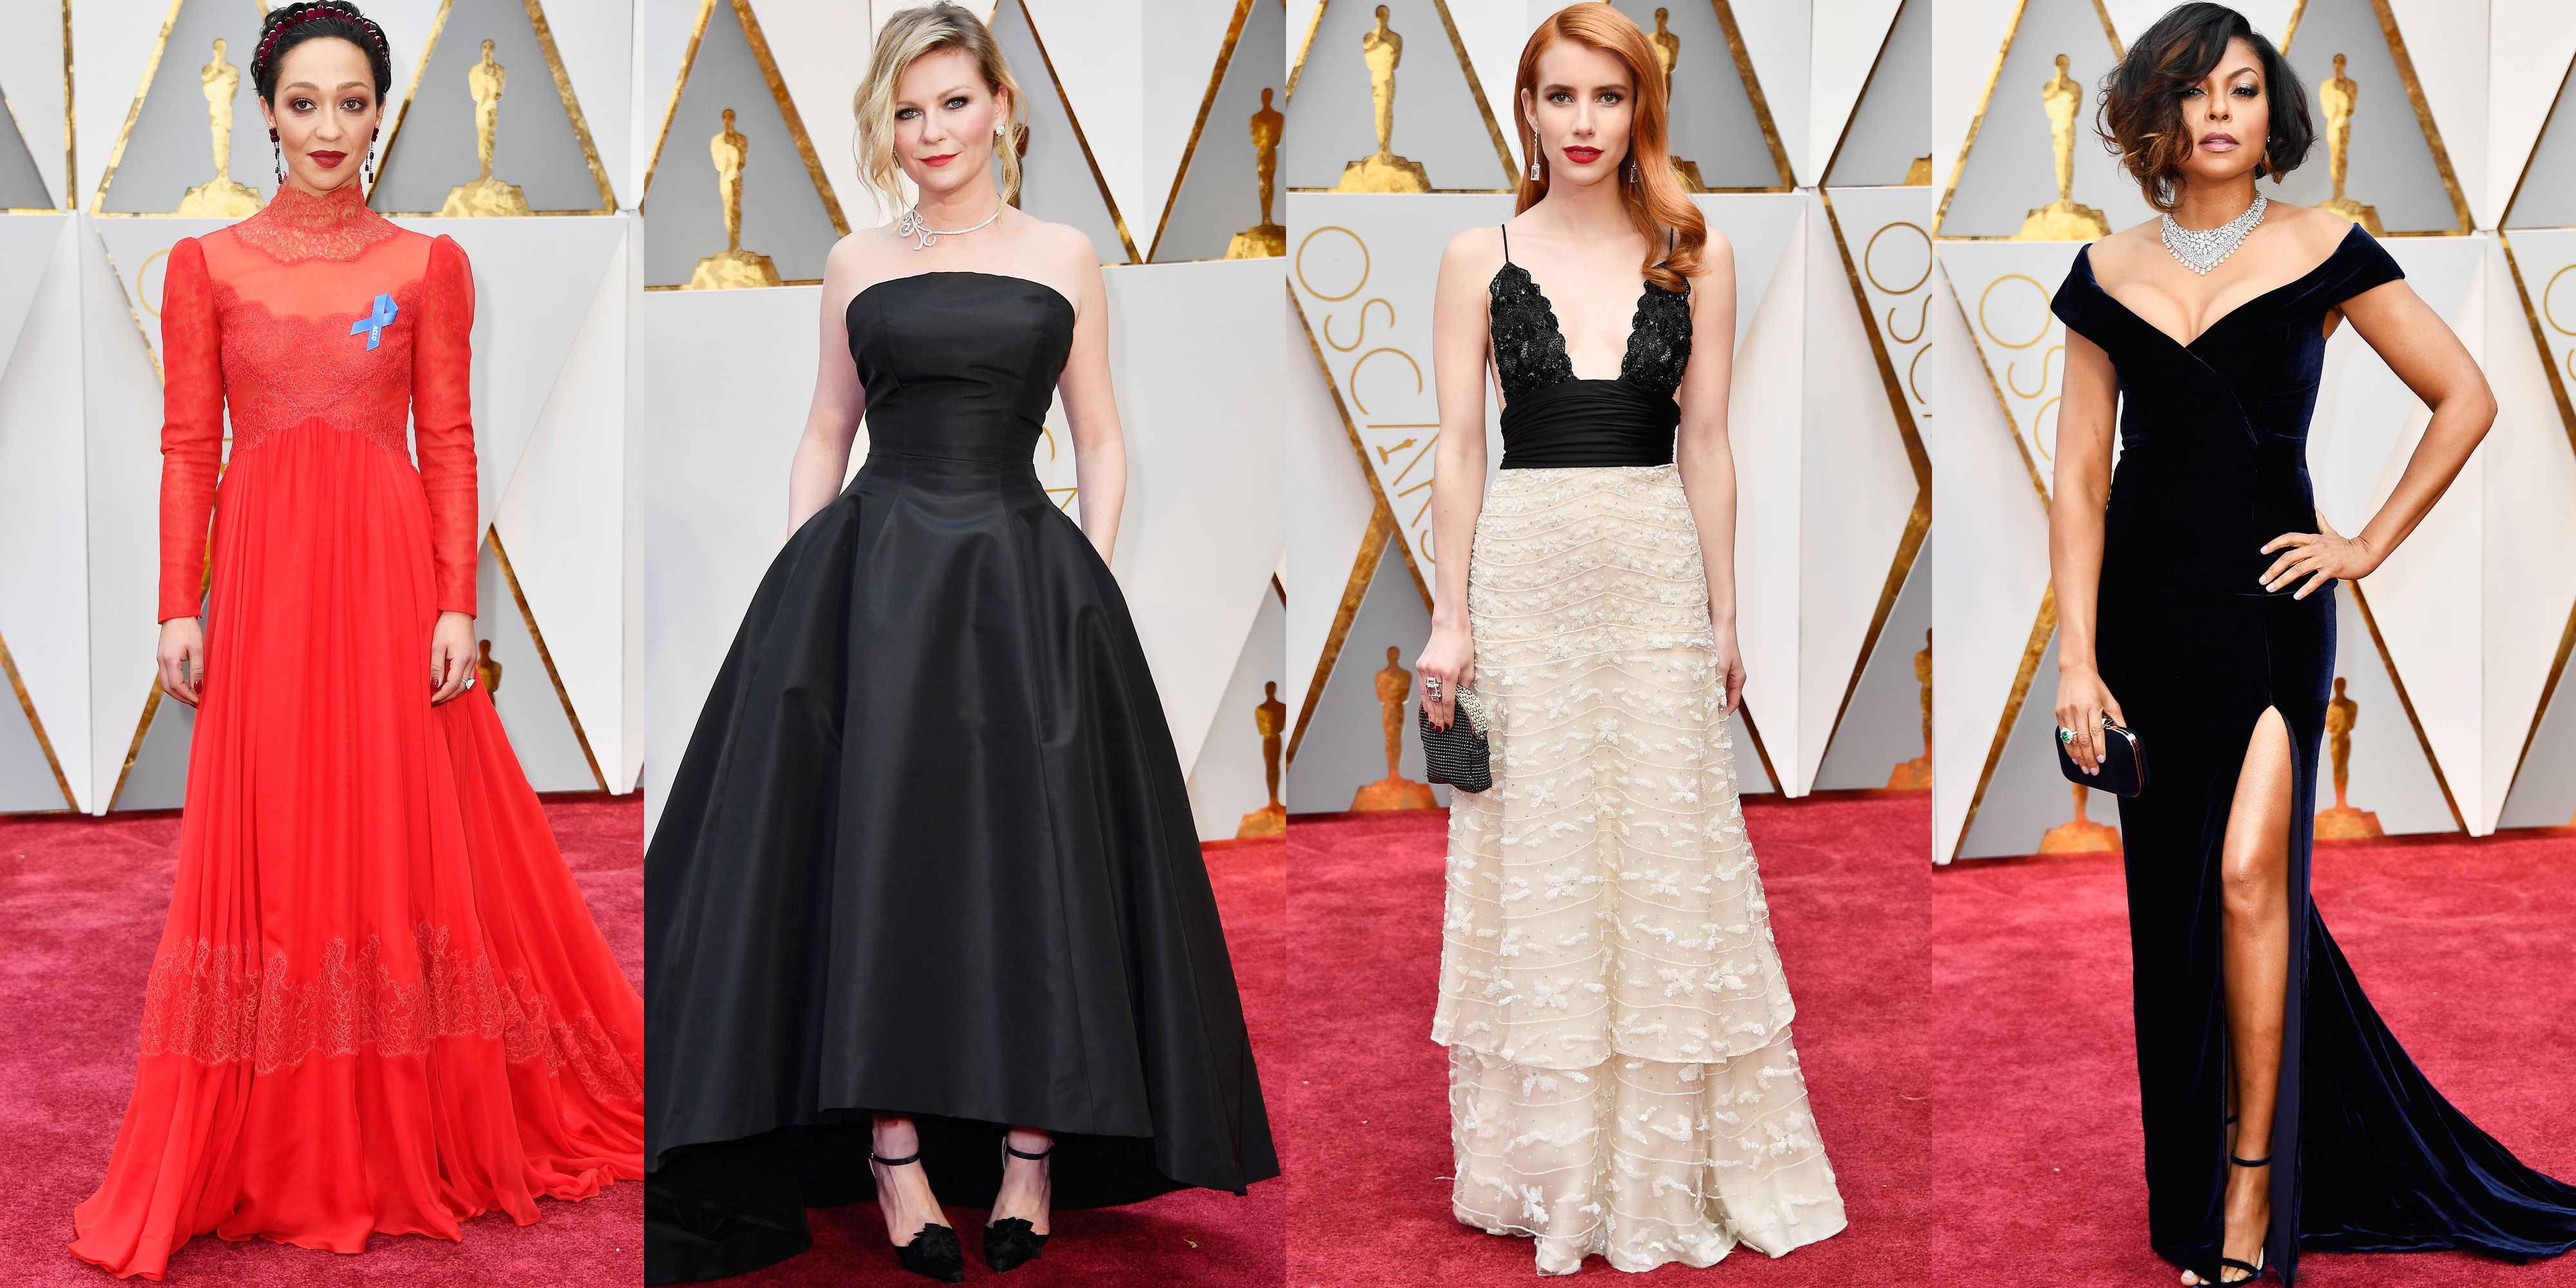 Red carpet fashion at the oscars 85